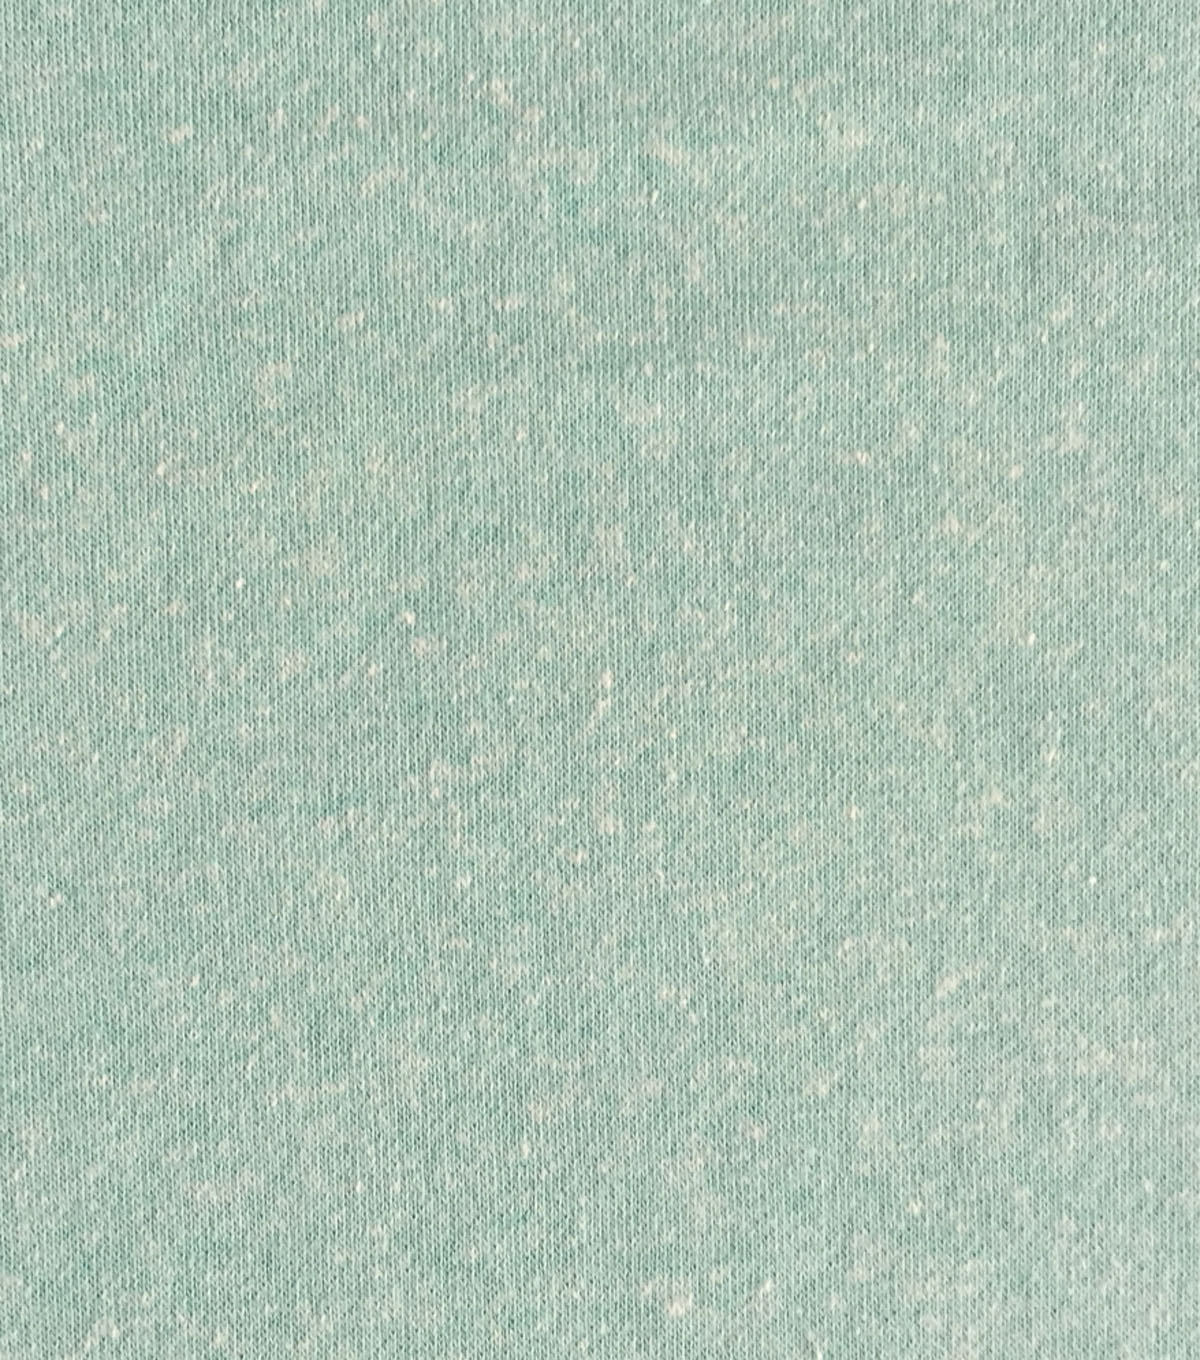 French Terry Fabric -Aruba Blue